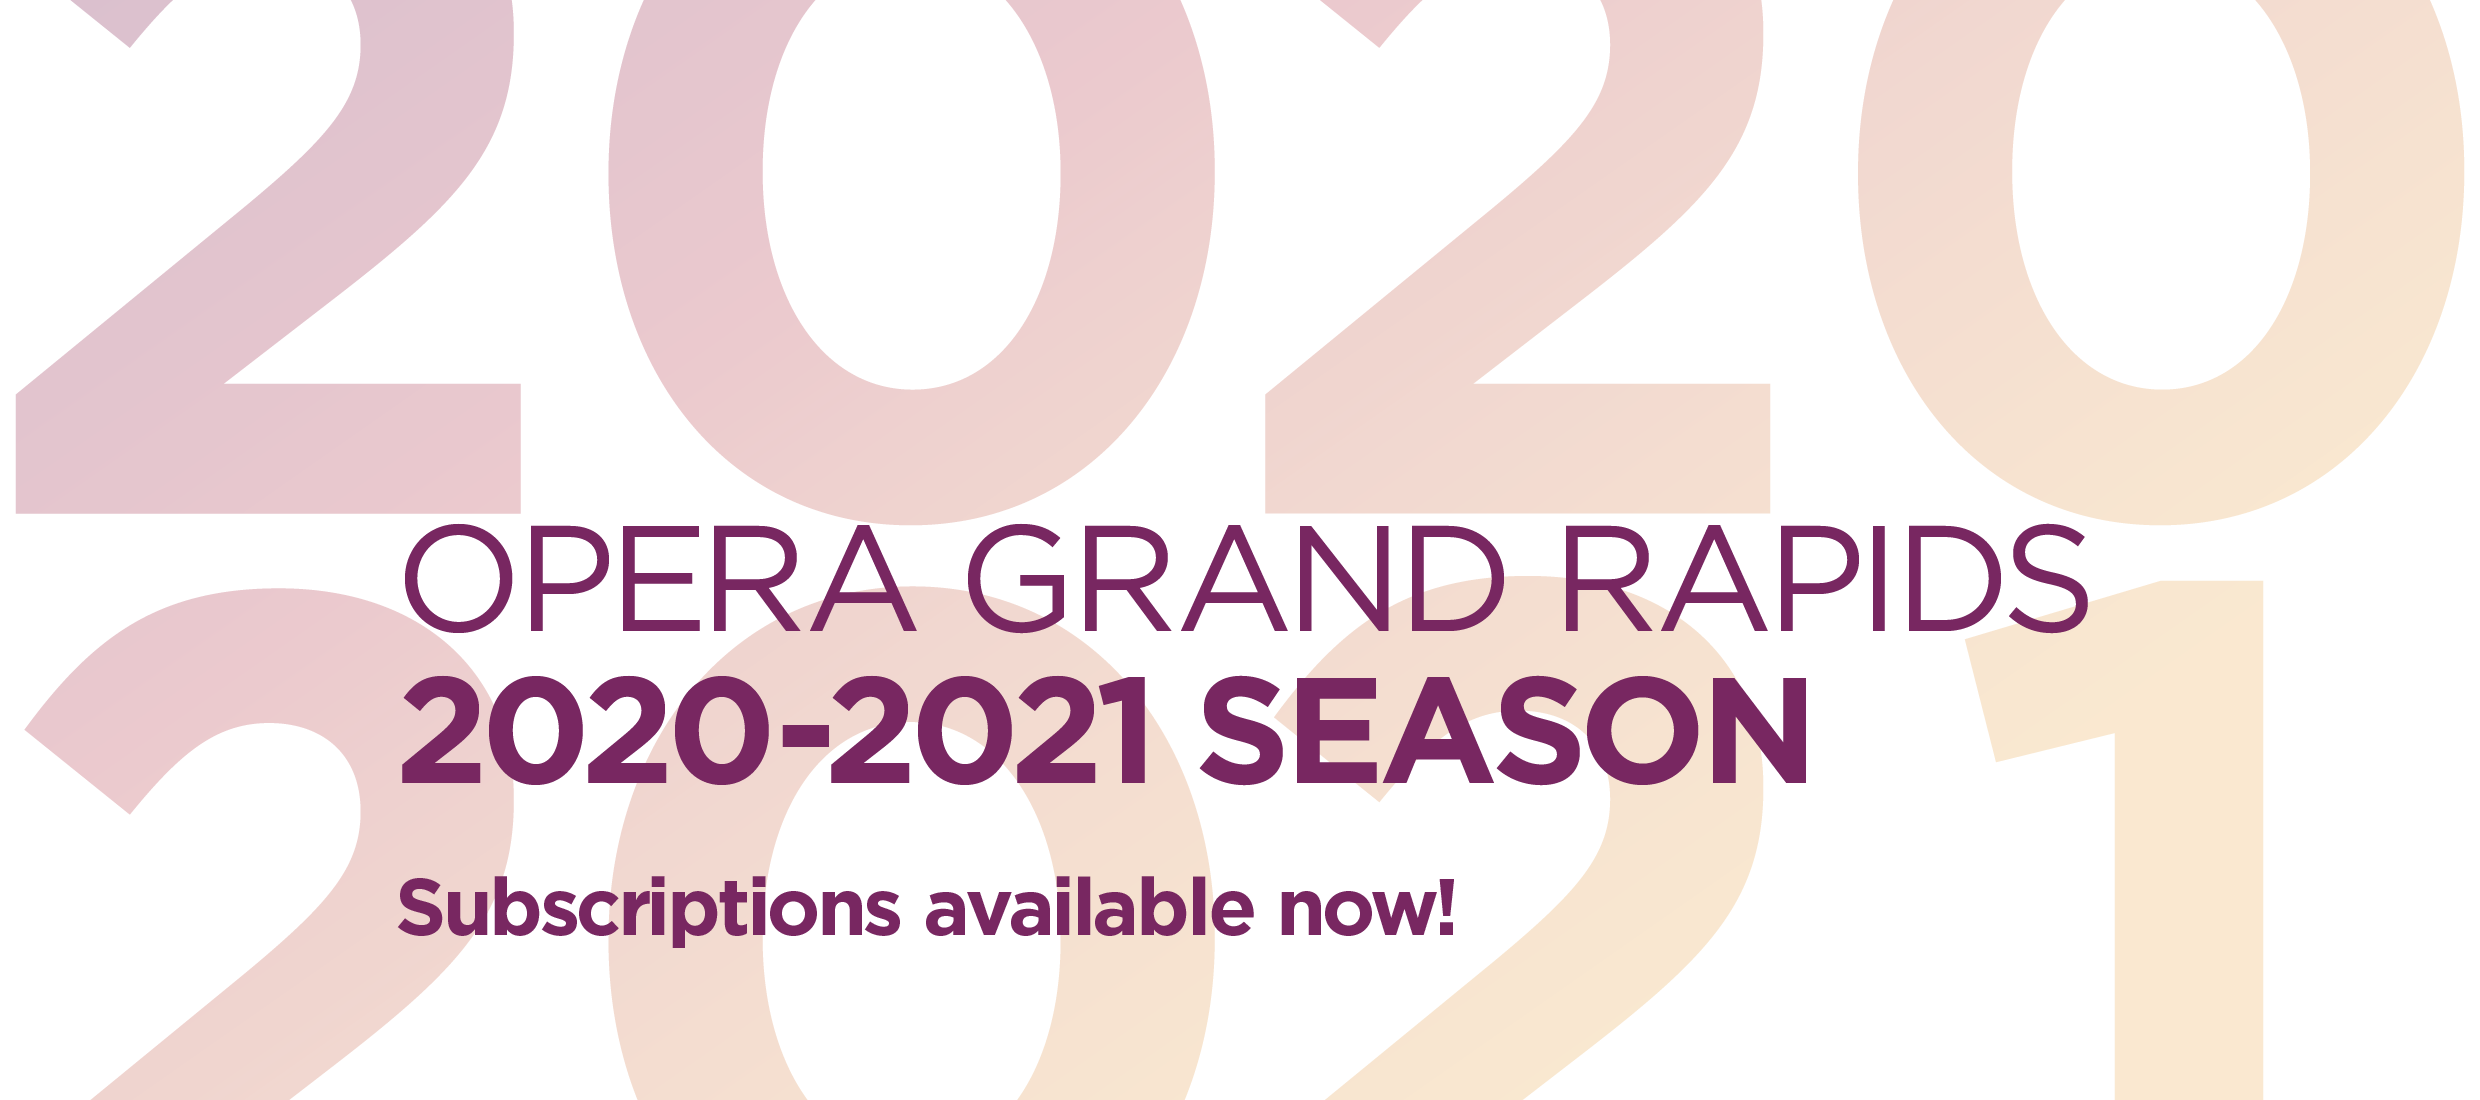 Opera Grand Rapids 2020-2021 Season Subscriptions Available Now!